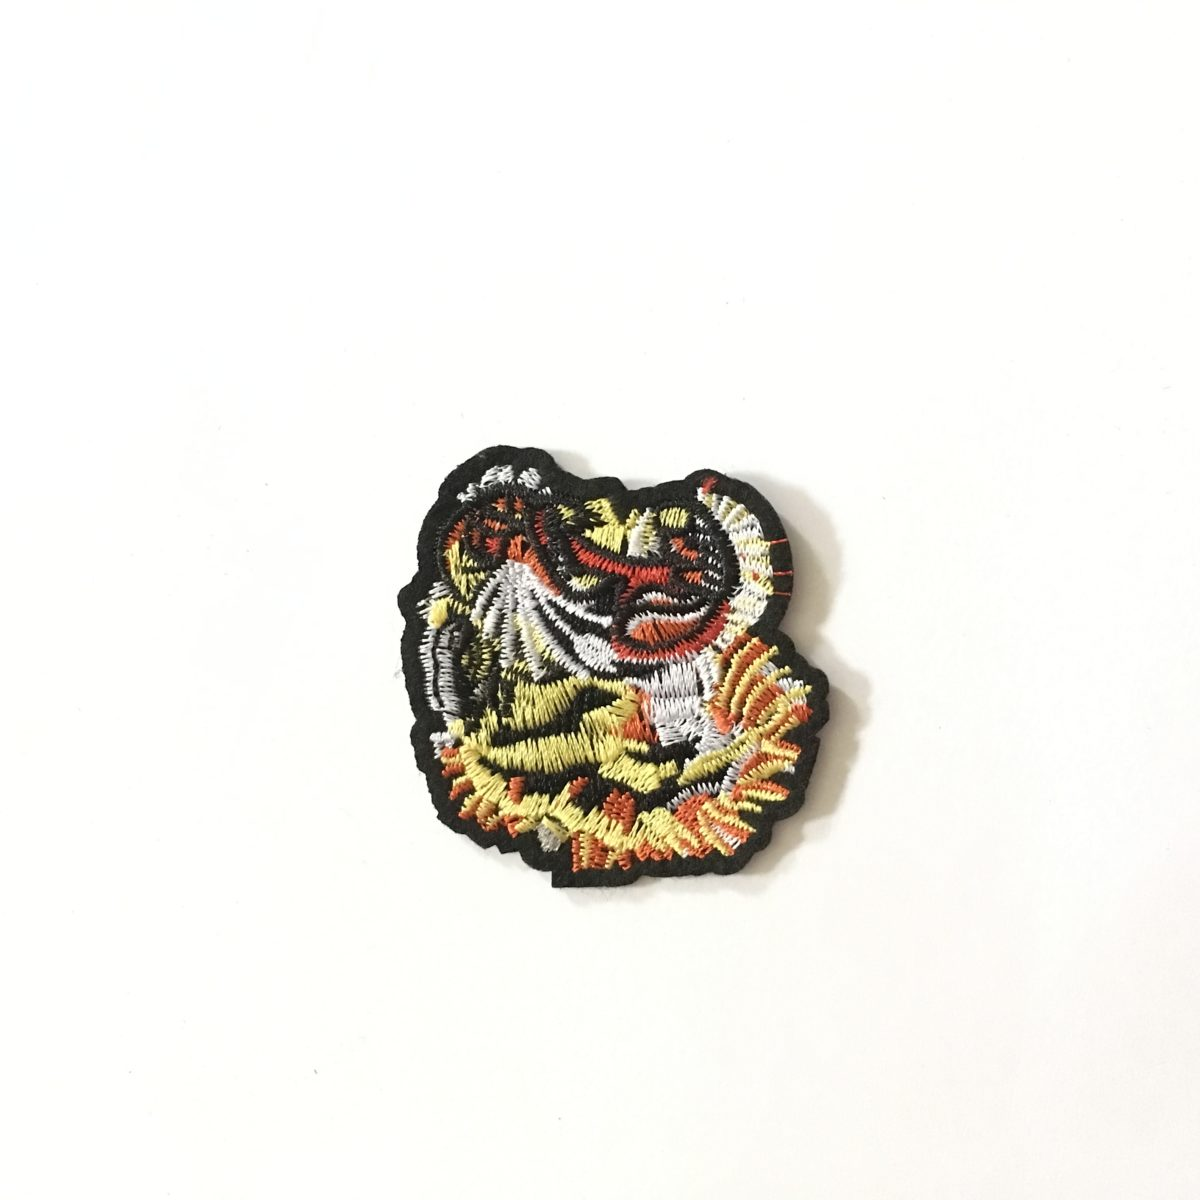 Small Embroidered Tiger Patch Appliqué, Iron On, Hot Fix, DIY 1